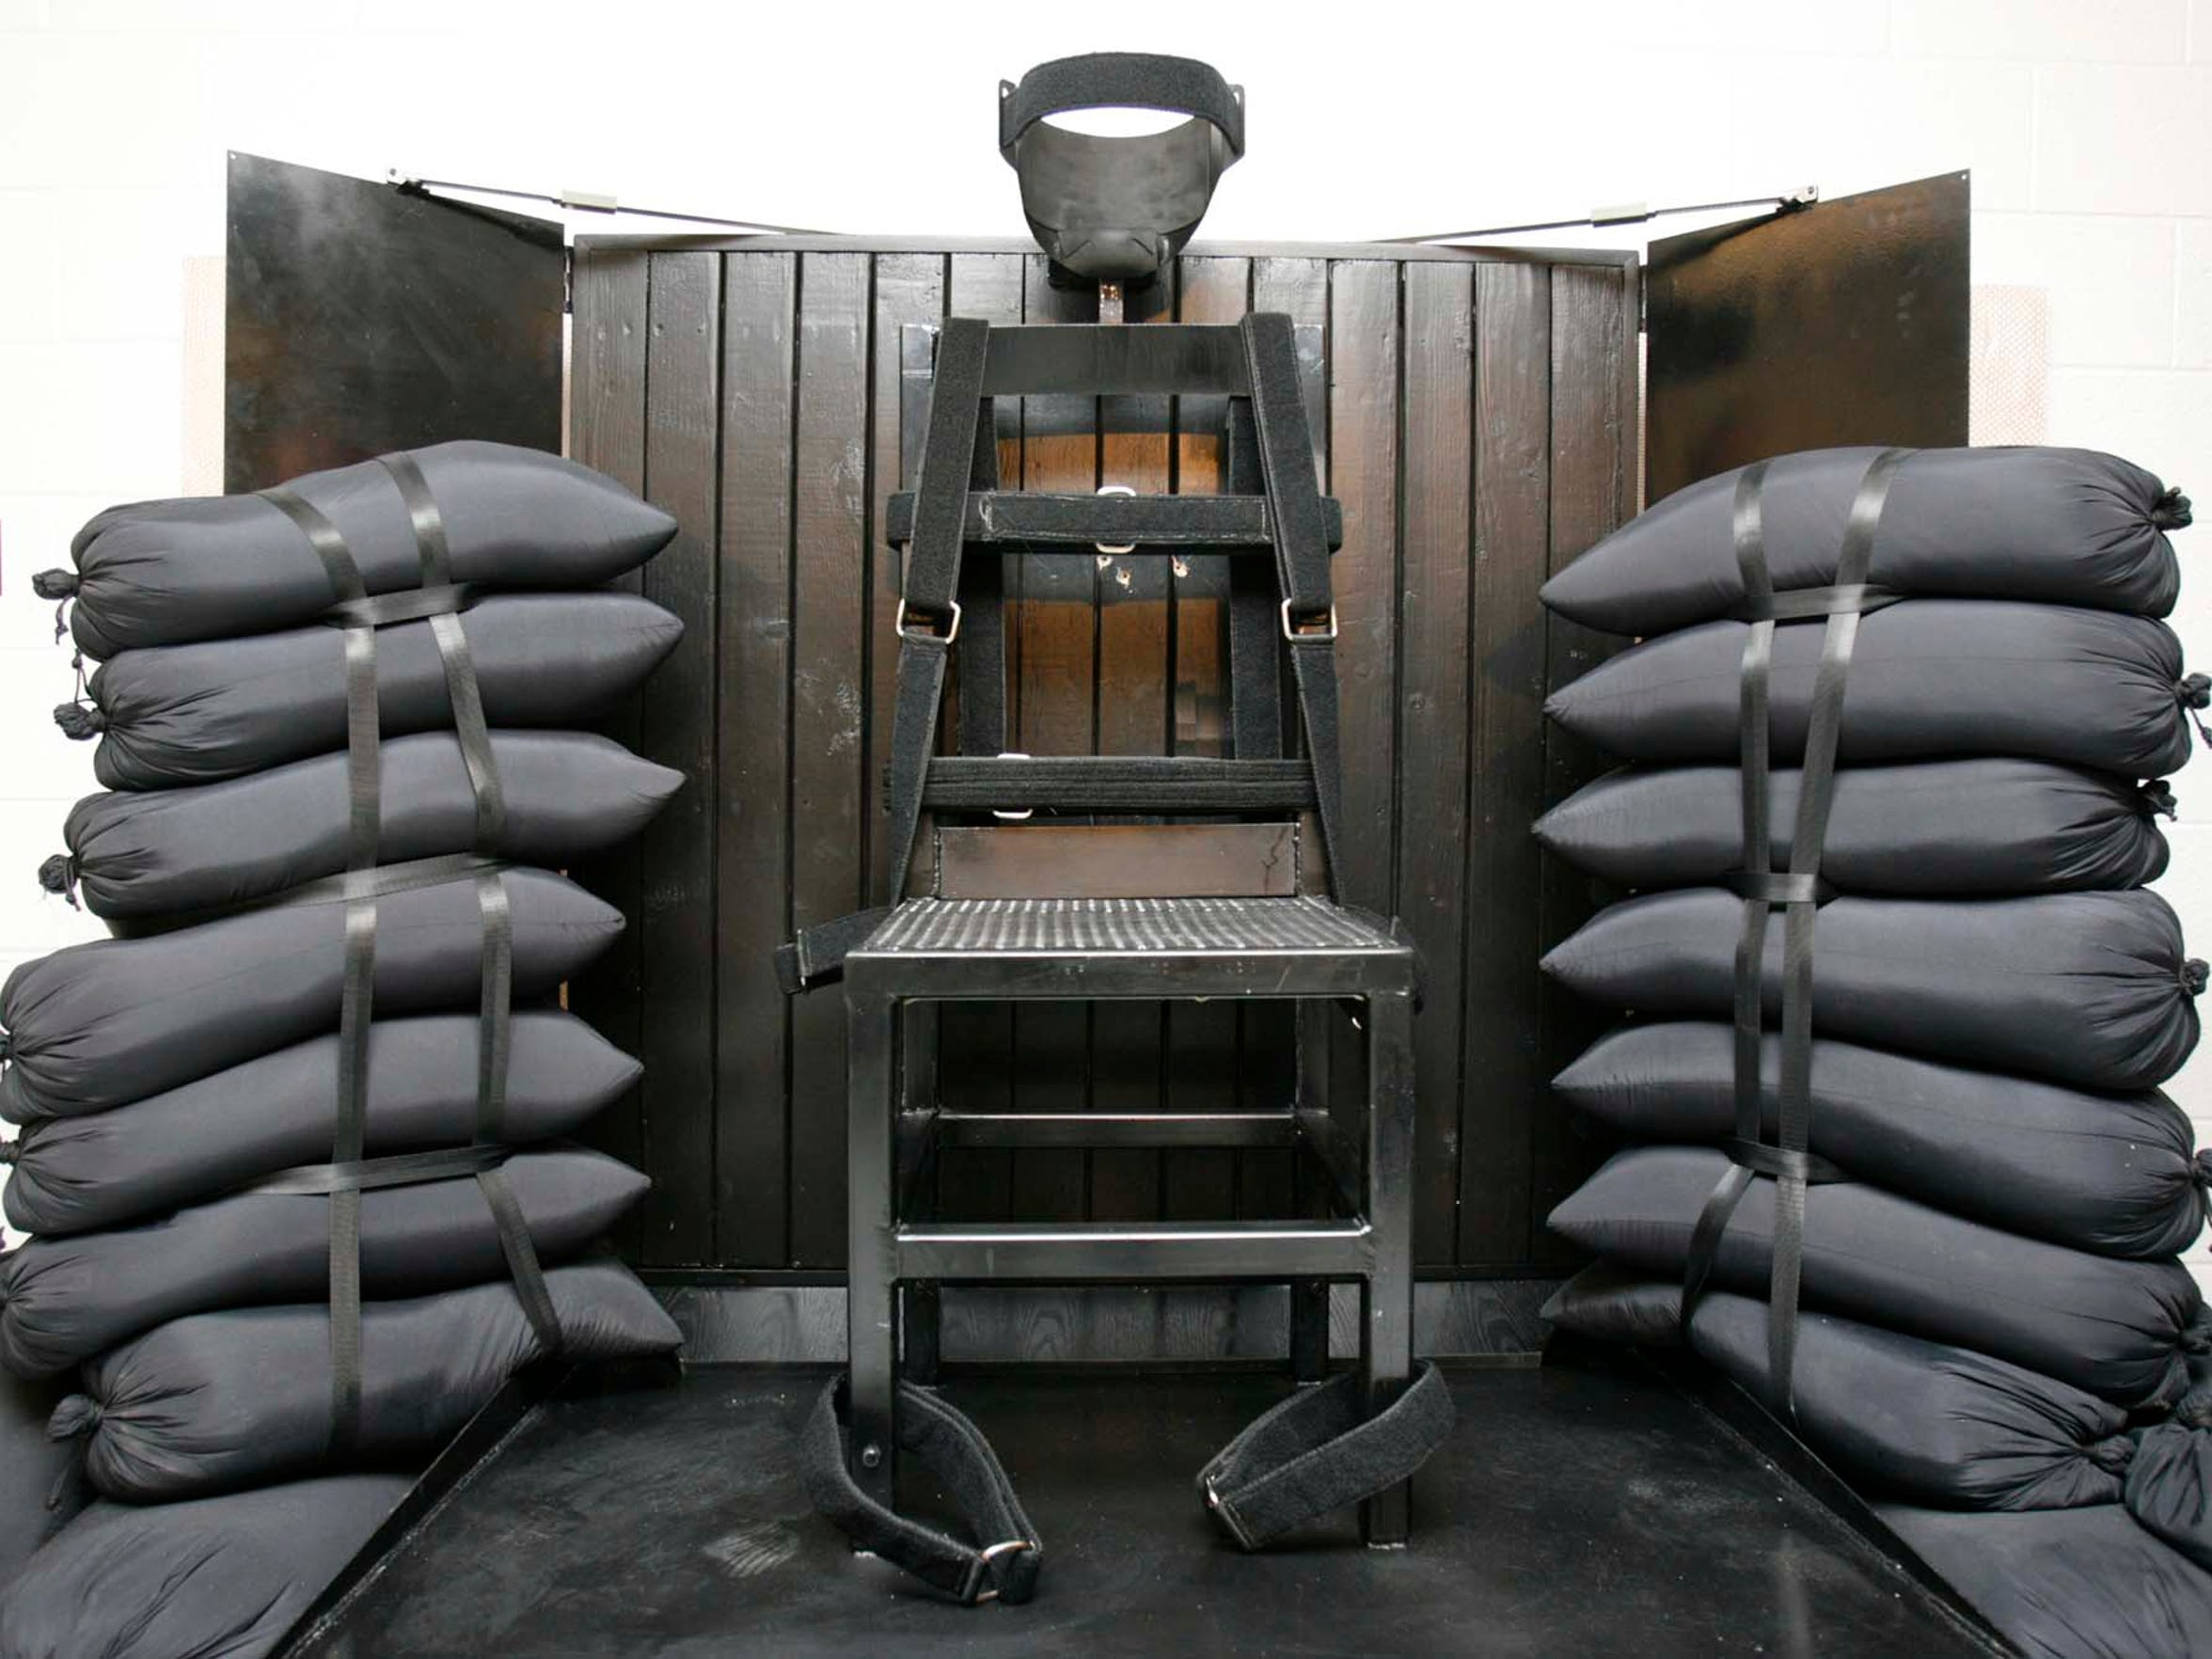 This June 18, 2010, file photo shows the firing squad execution chamber at the Utah State Prison in Draper, Utah.